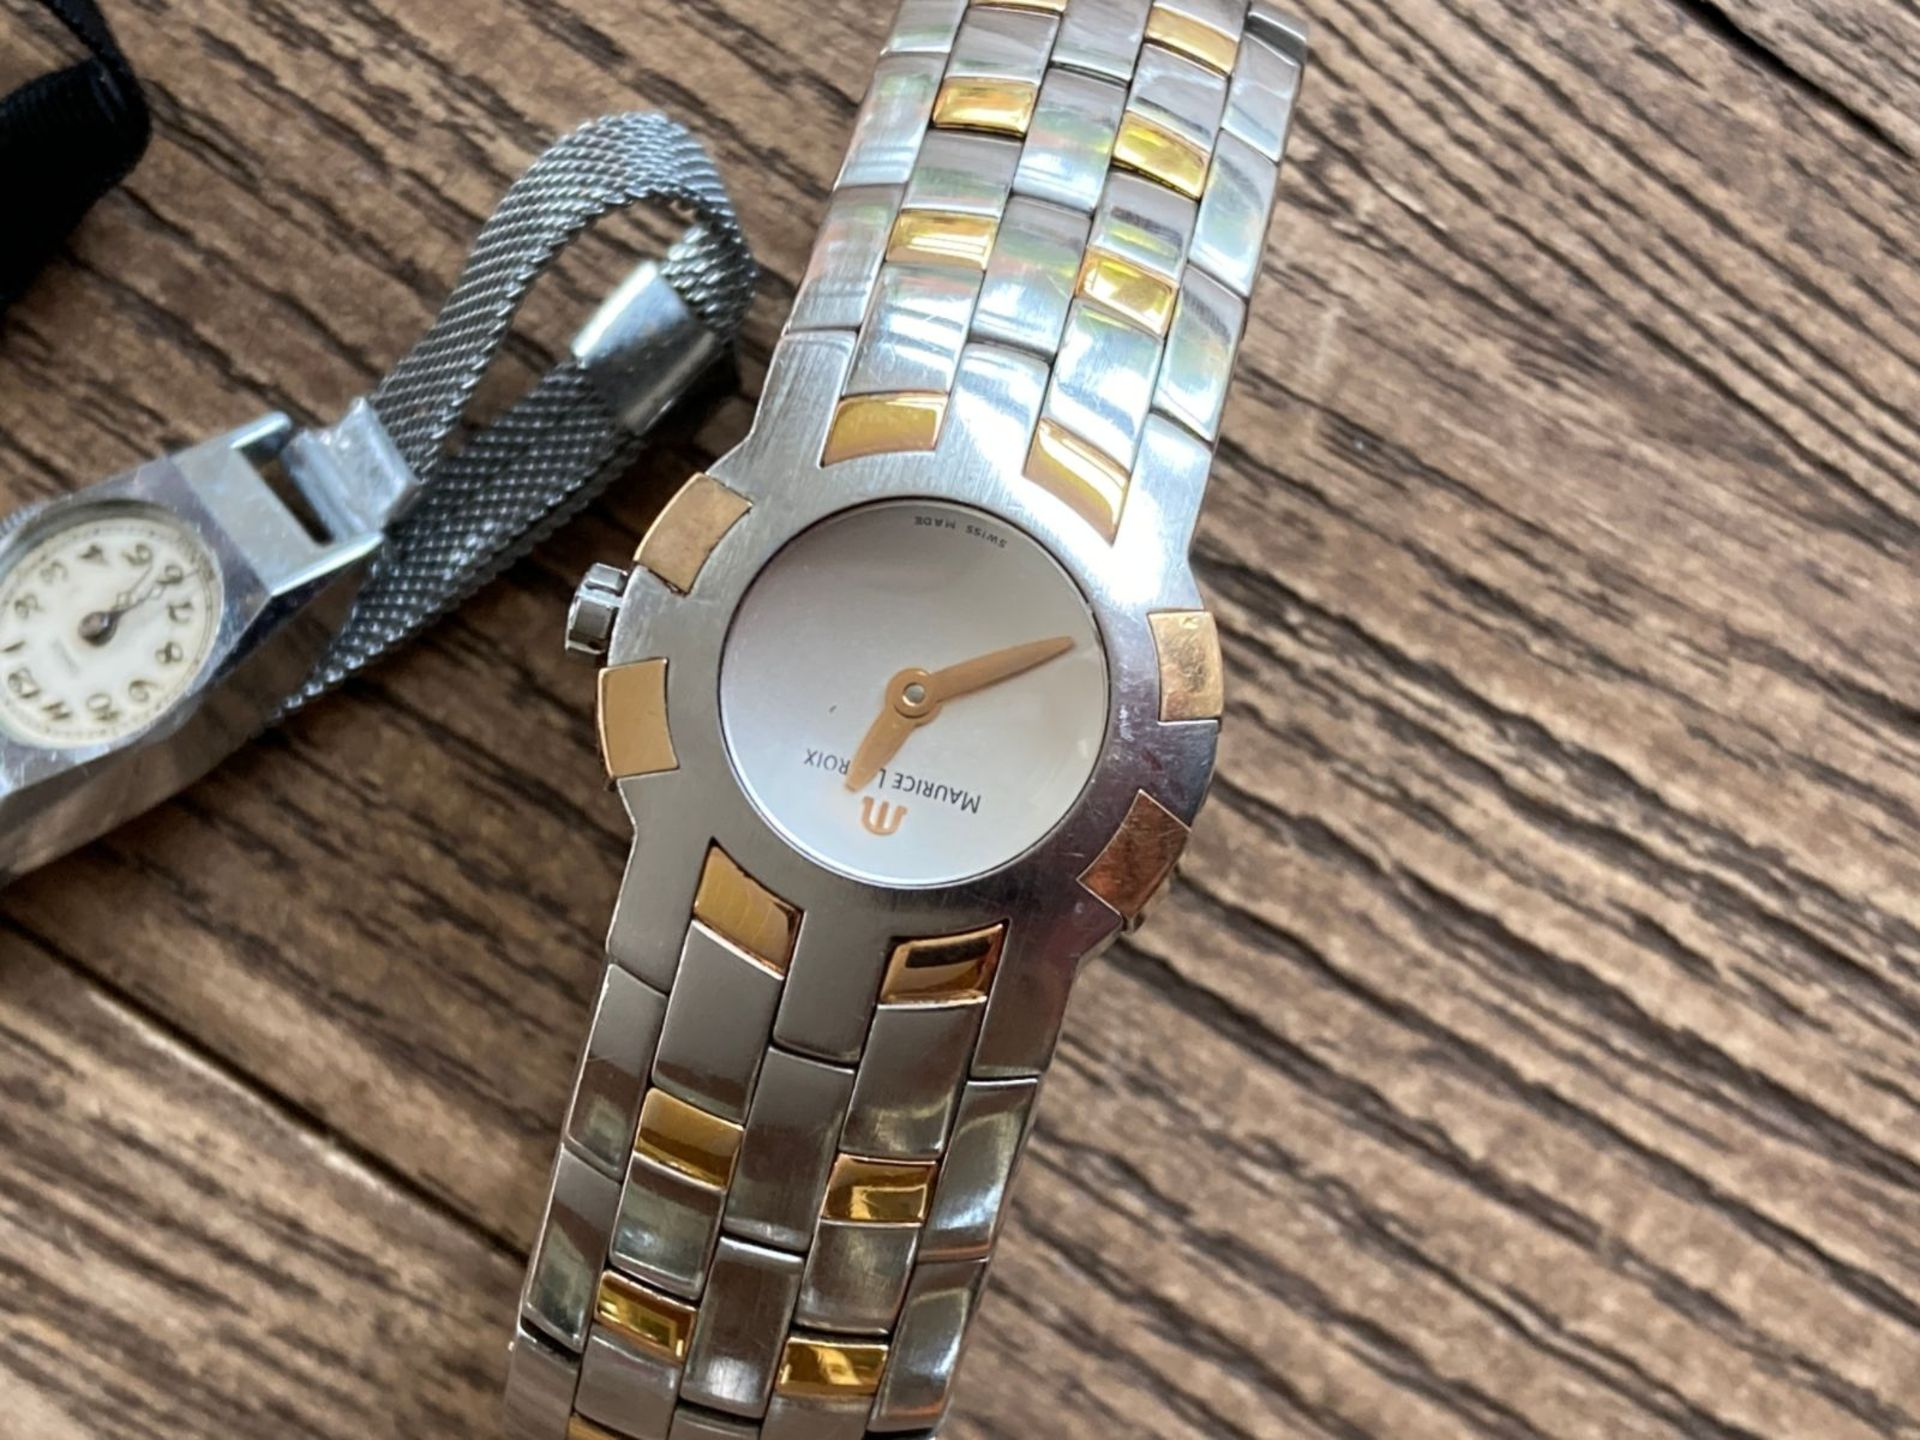 MIXED WATCHES INC MAURICE LACROIX STEEL AND GOLD, CHARRIOL DIAMOND SET ETC - Image 2 of 3